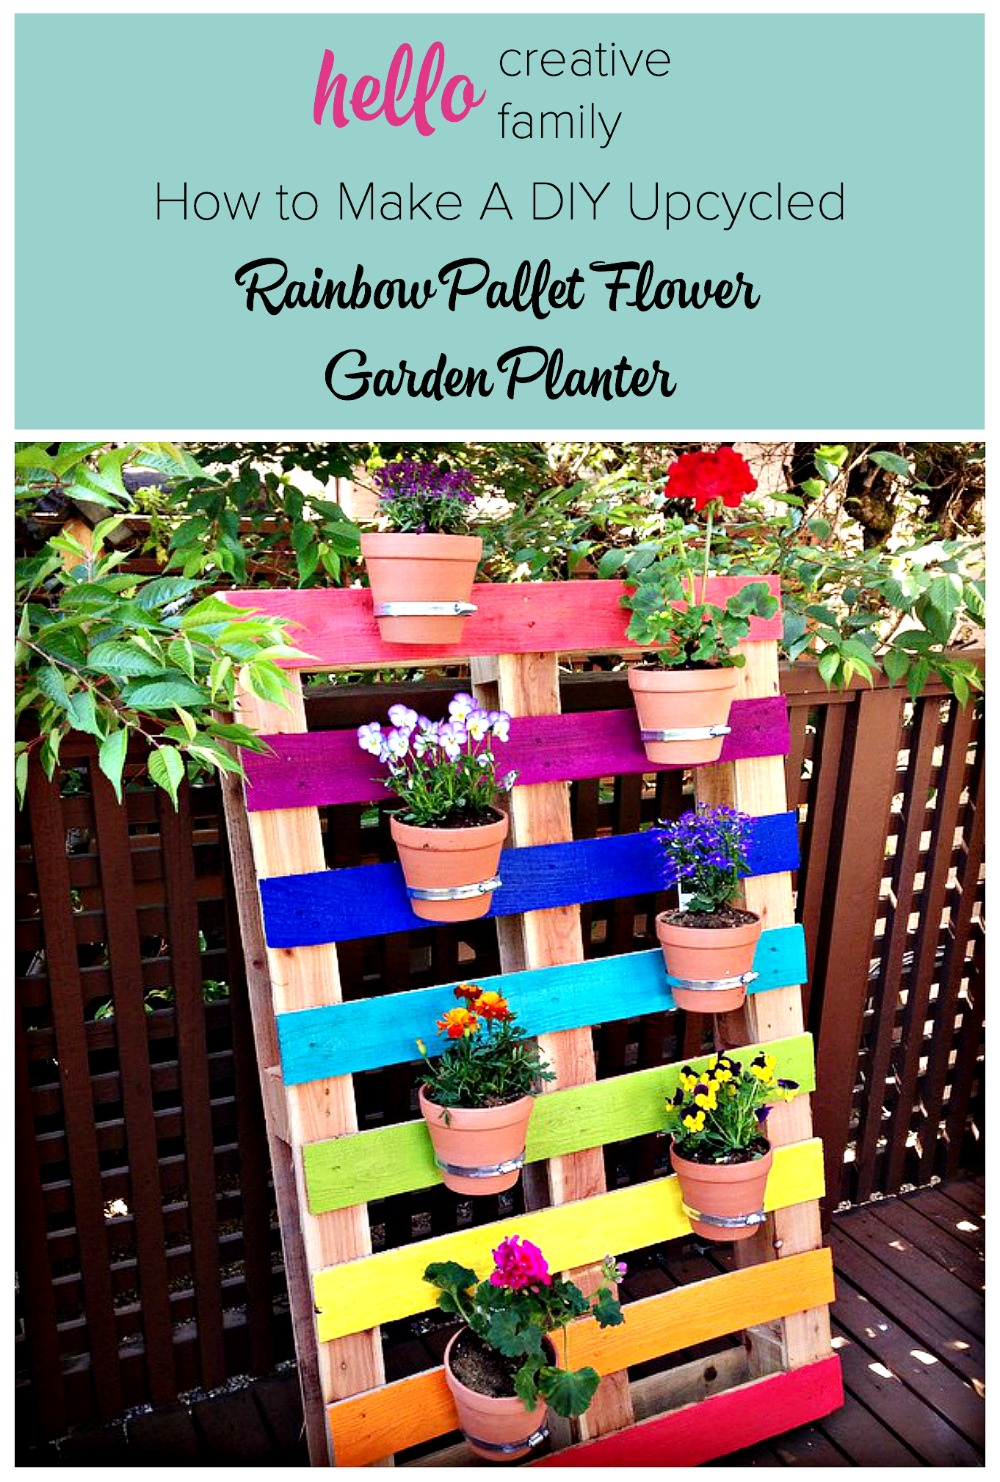 Create a bright and colorful upcycled rainbow pallet planter project with these simple instructions from Hello Creative Family. An easy and fun family weekend project that kids will love.